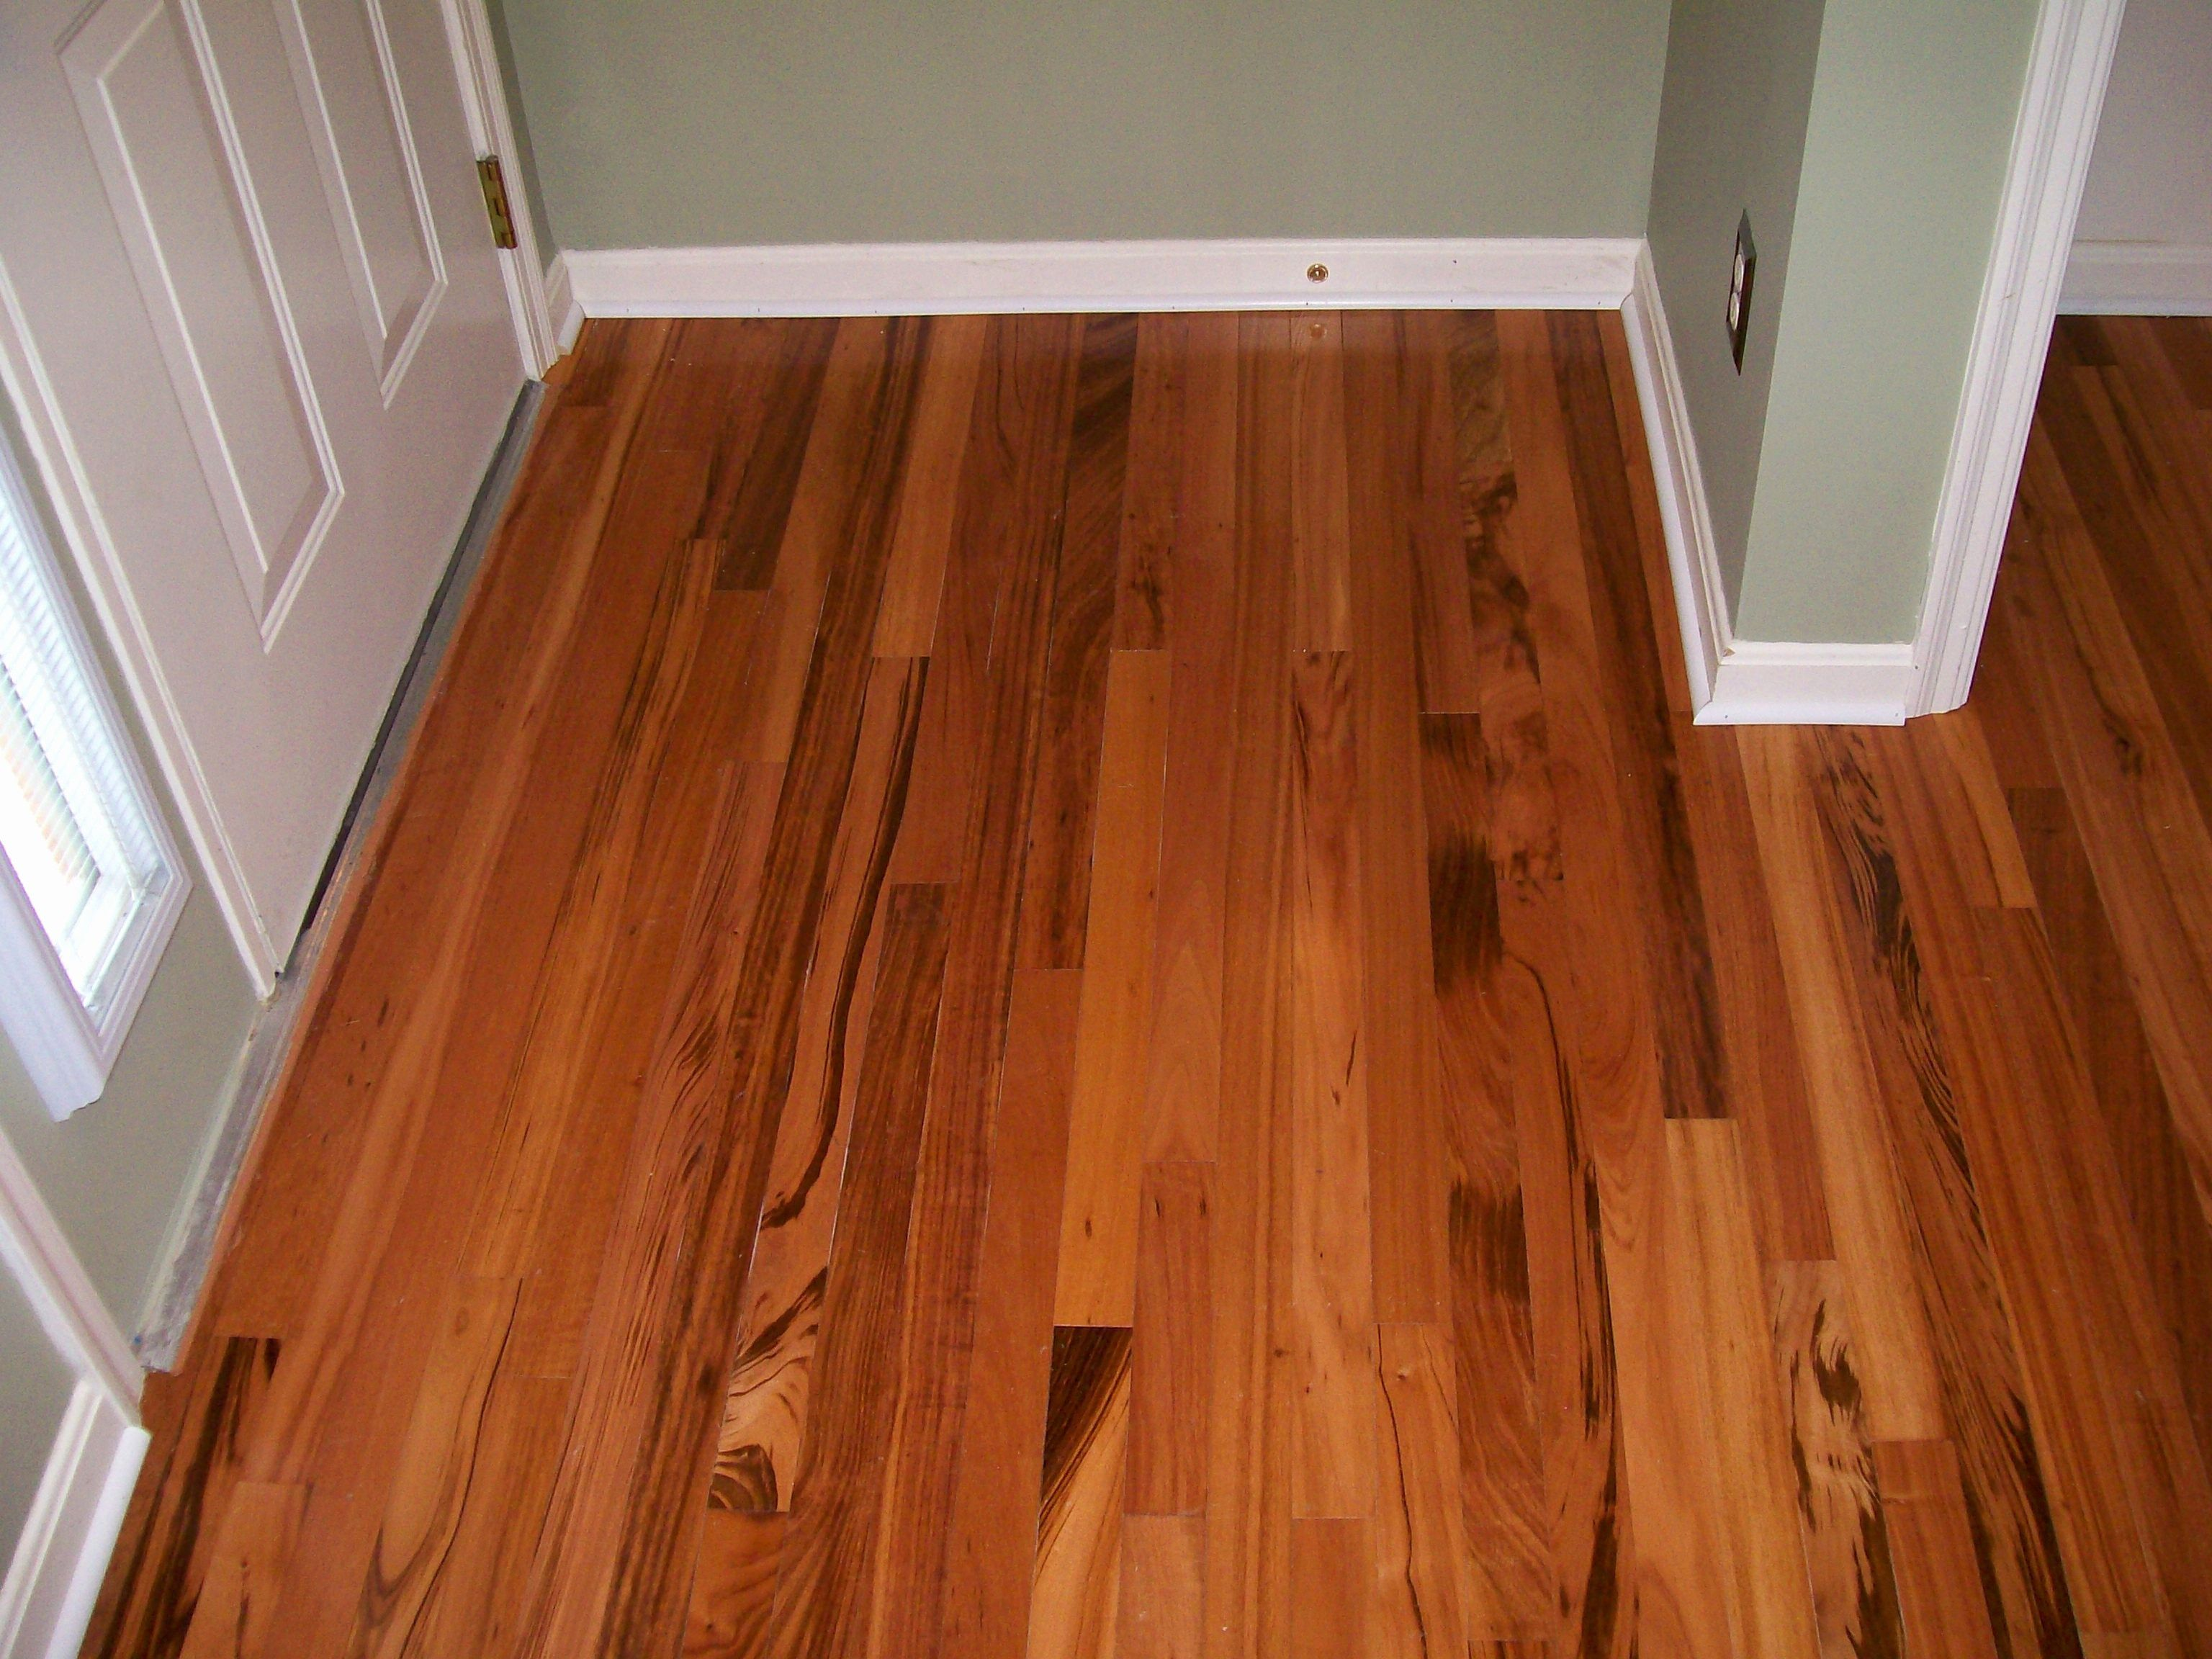 Awesome Hardwood Floor Installation Cost Per Square Foot Toronto And View In 2020 Flooring Cost Hardwood Floor Installation Cost Installing Hardwood Floors